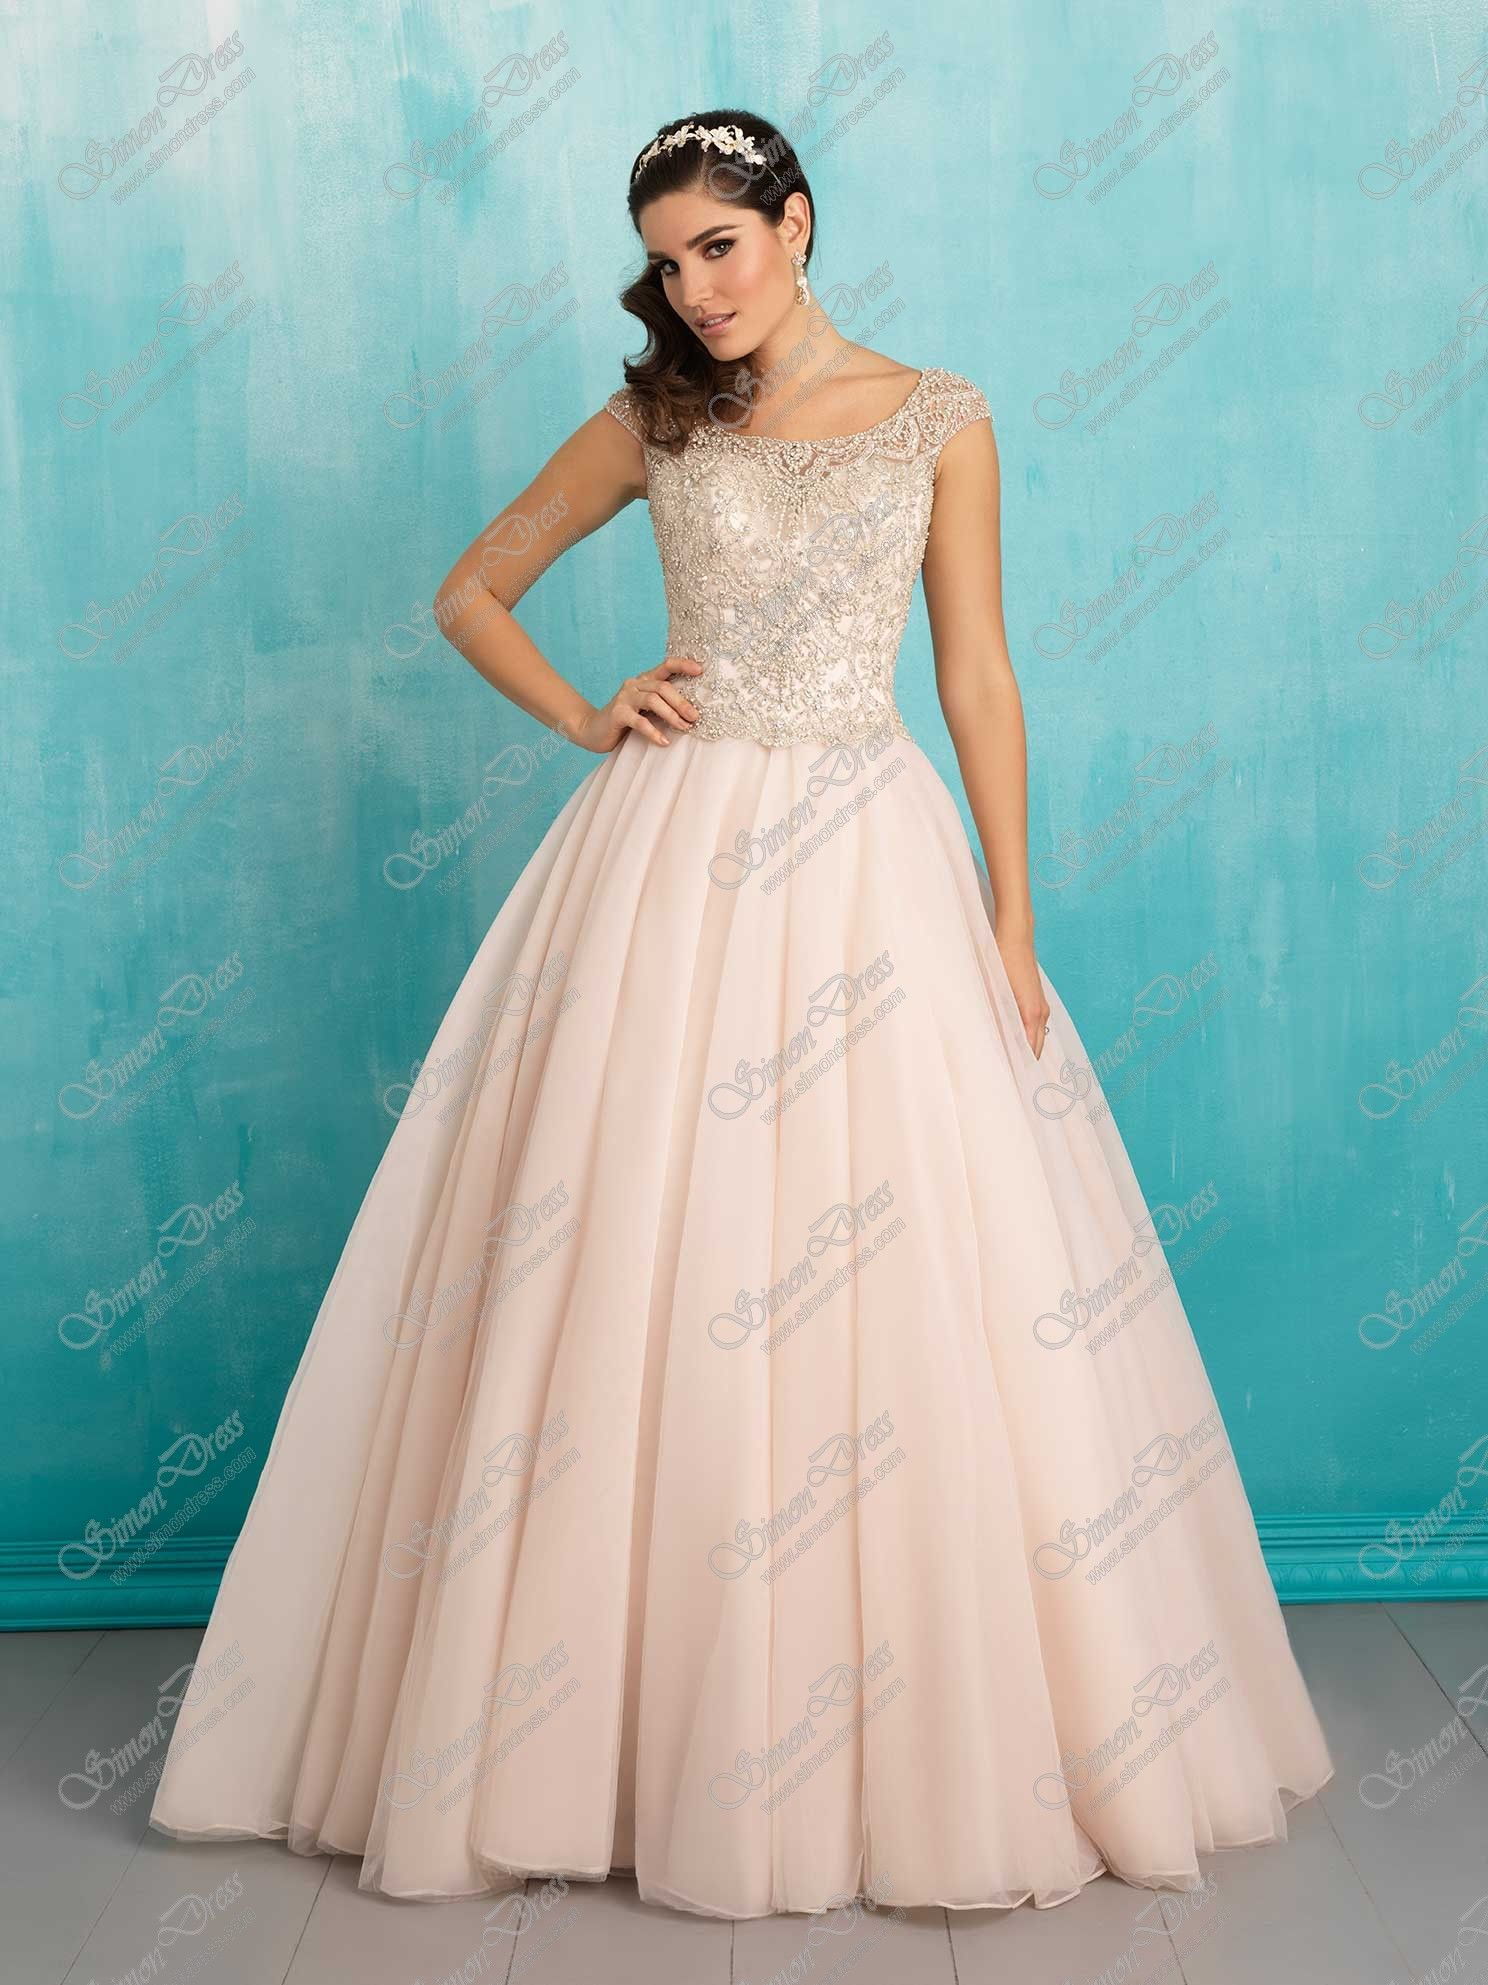 Allure bridals wedding dress style allure bridals wedding